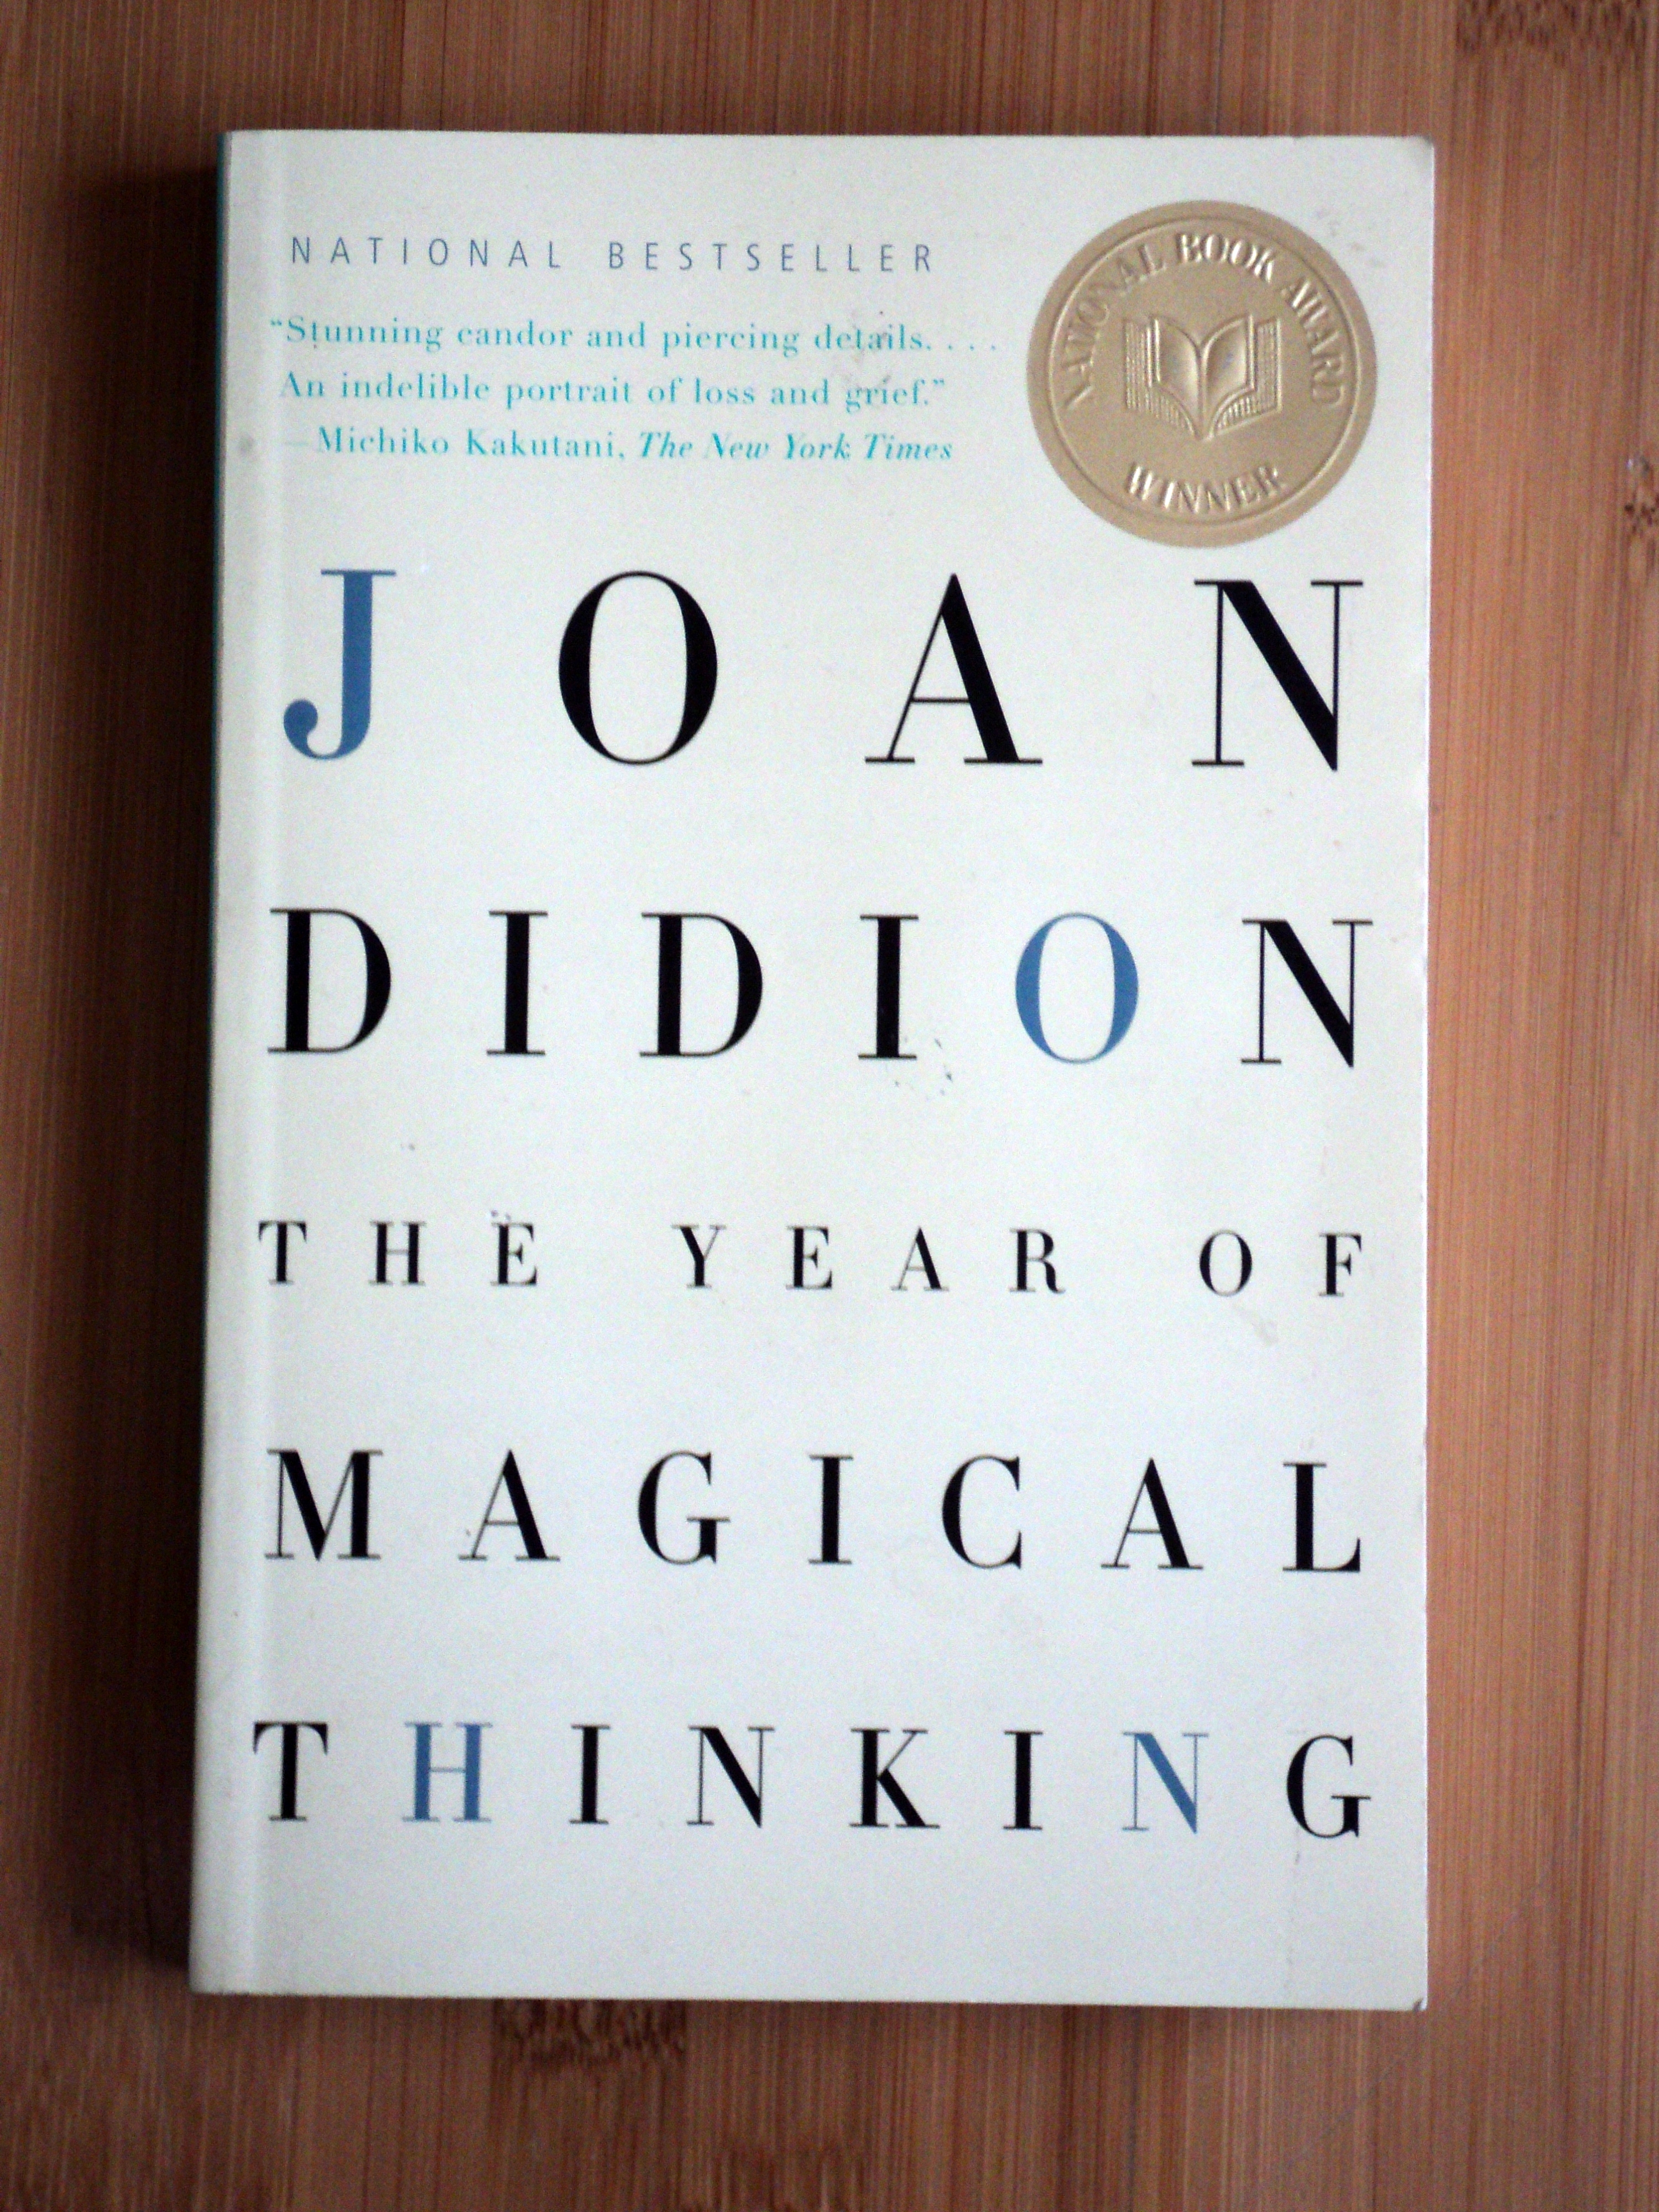 the year of magical thinking by joan Written by joan didion, audiobook narrated by barbara caruso spanning more than 200 years, an african american and latinx history of the united states is a revolutionary, politically charged narrative history arguing that the global south was crucial to the development of america as we know it.